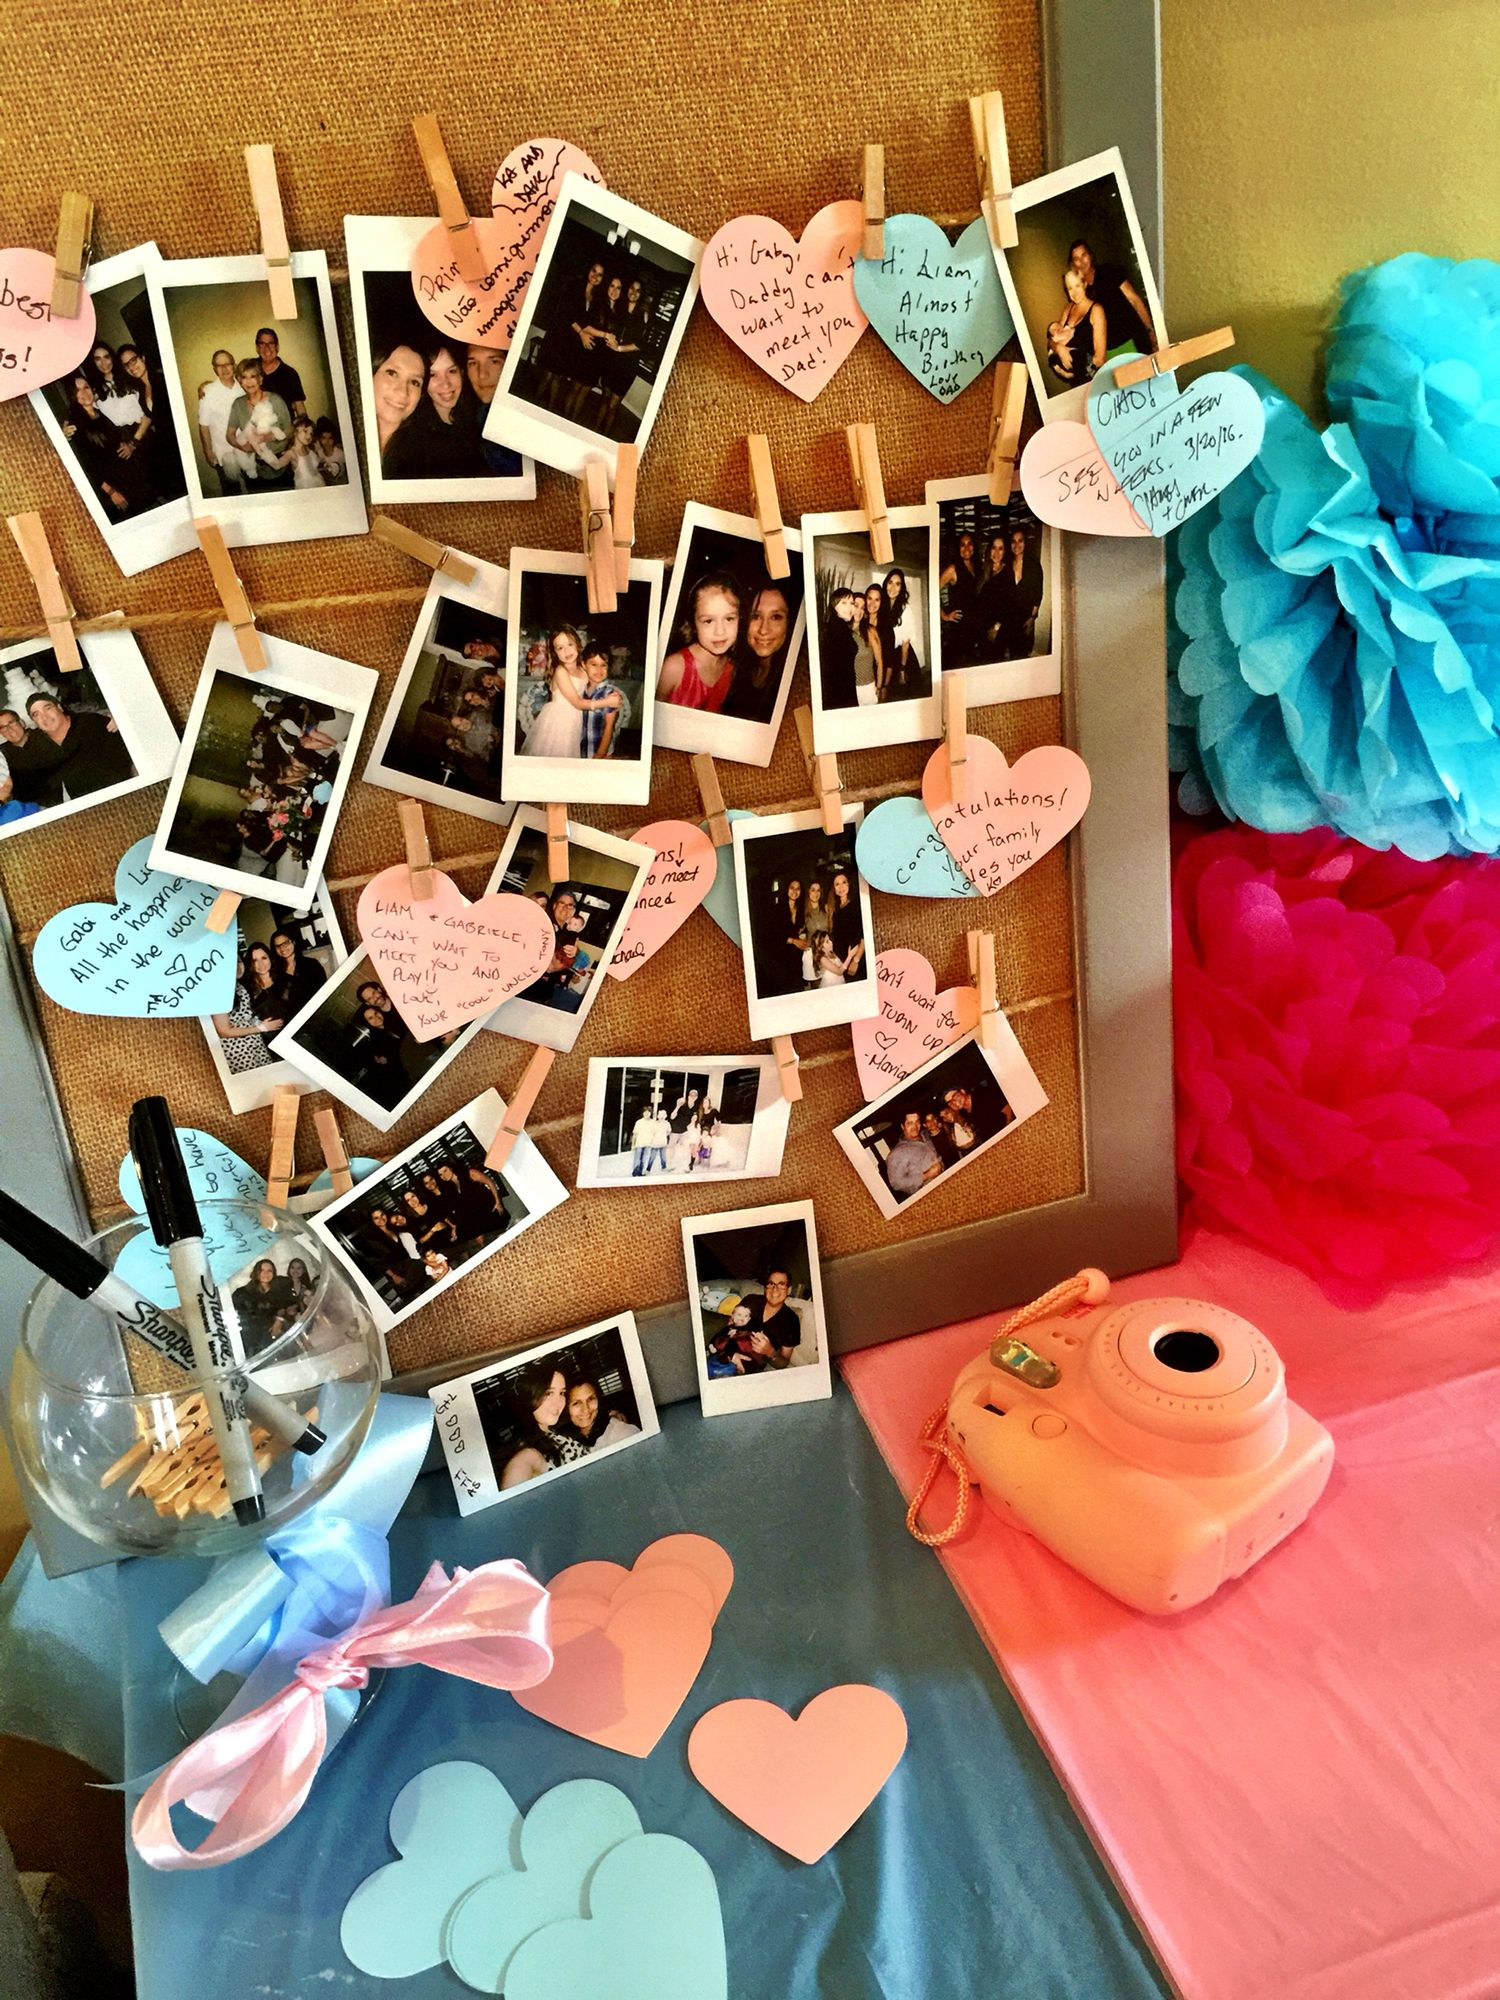 aw I should do this at my baby shower w my Polaroid camera